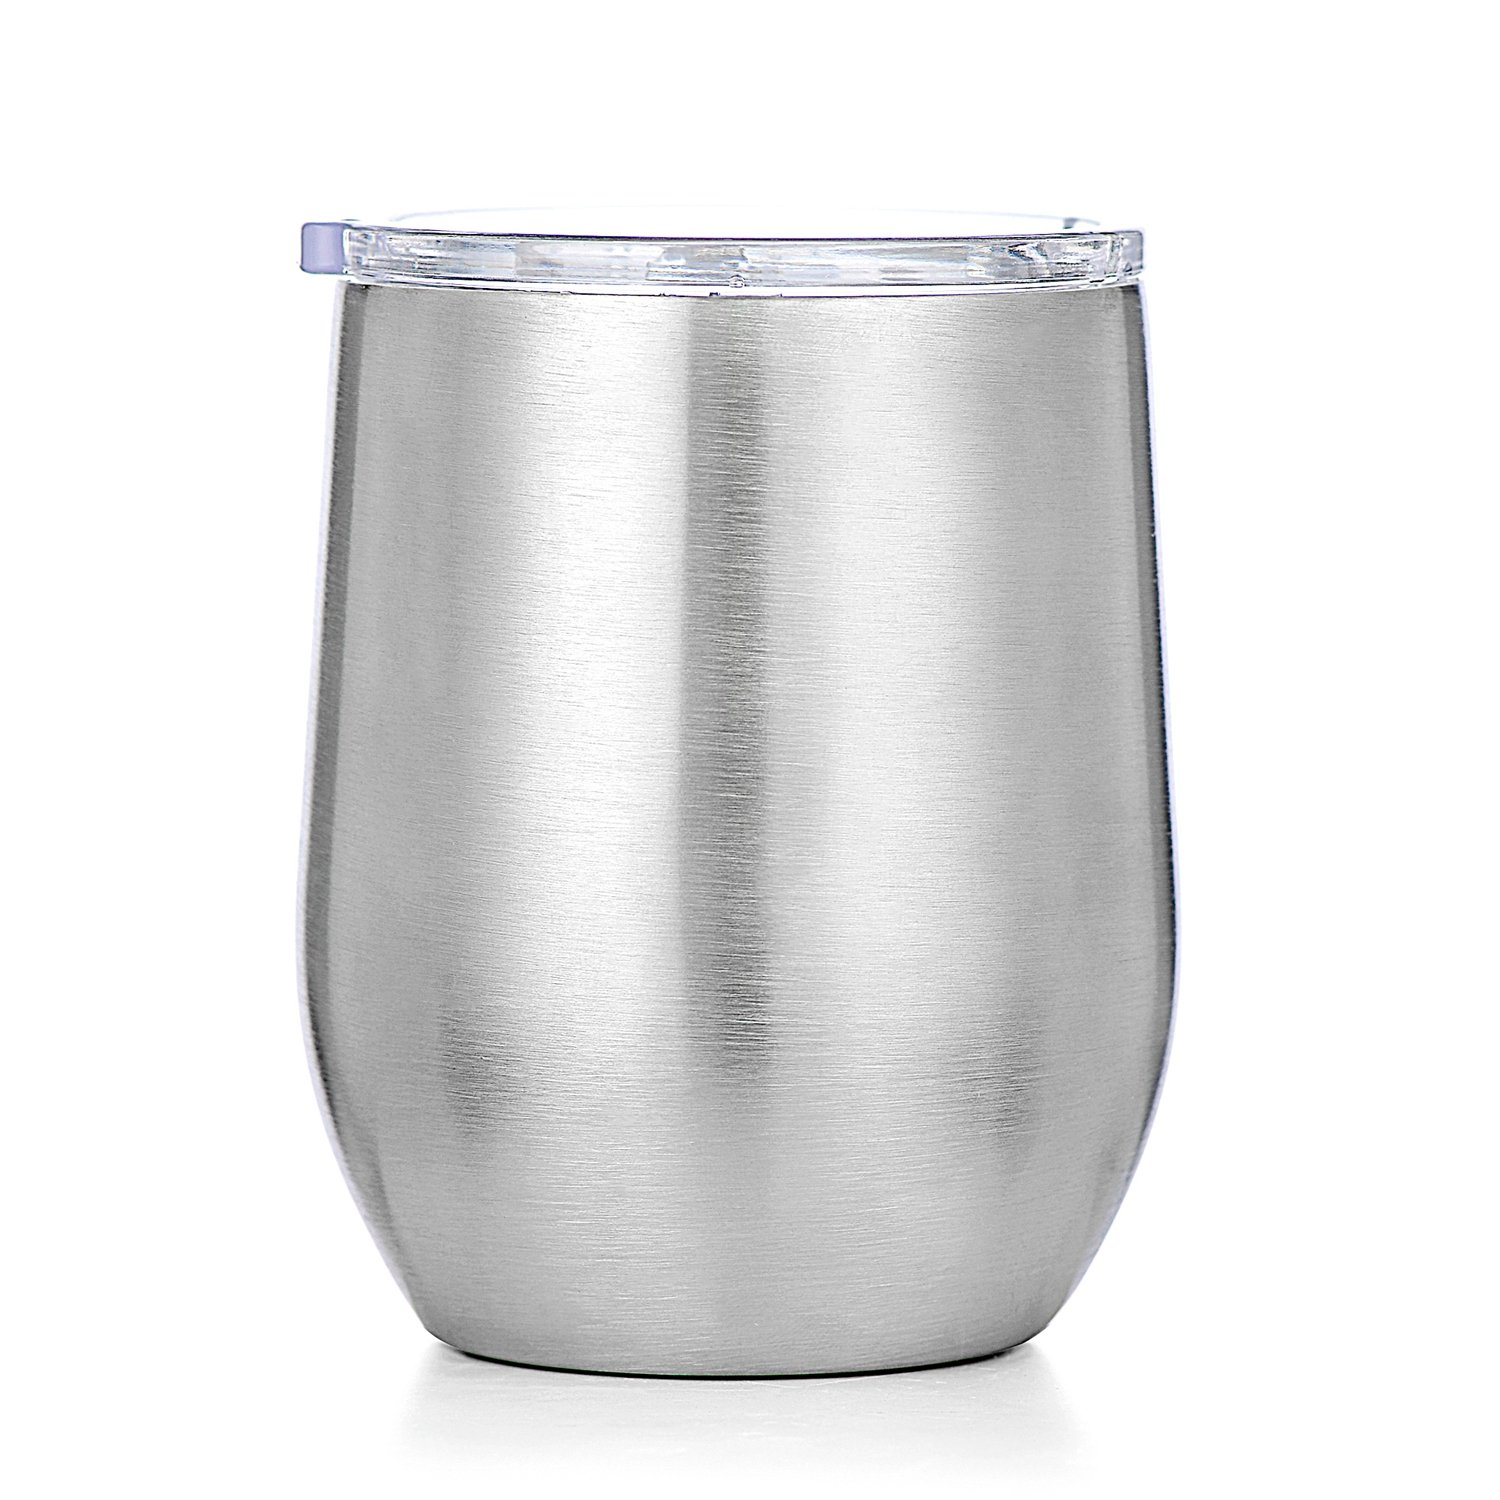 Amzyt Stainless Steel Stemless Wine Glasses Food Grade 18/8 Sippy Cup With Spill Proof Lid For Women Outdoor And Travel Whiskey Glass